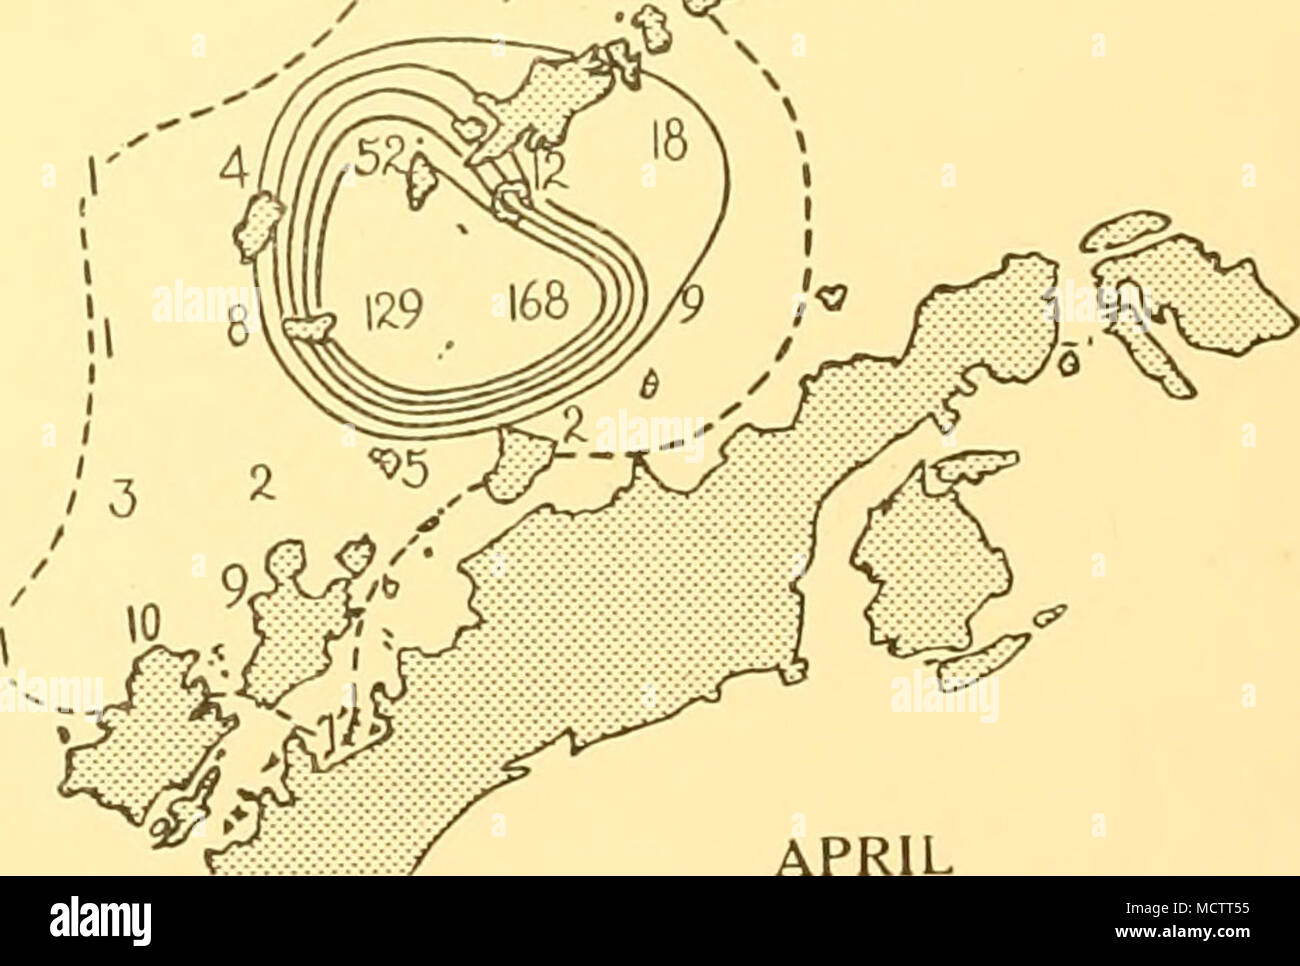 . APRIL 444 SCALE OF NAUTICAL MILES. lOO 200 Distribution of Fin whales taken on the South Shetland grounds in season 1928-9 300 - Stock Image